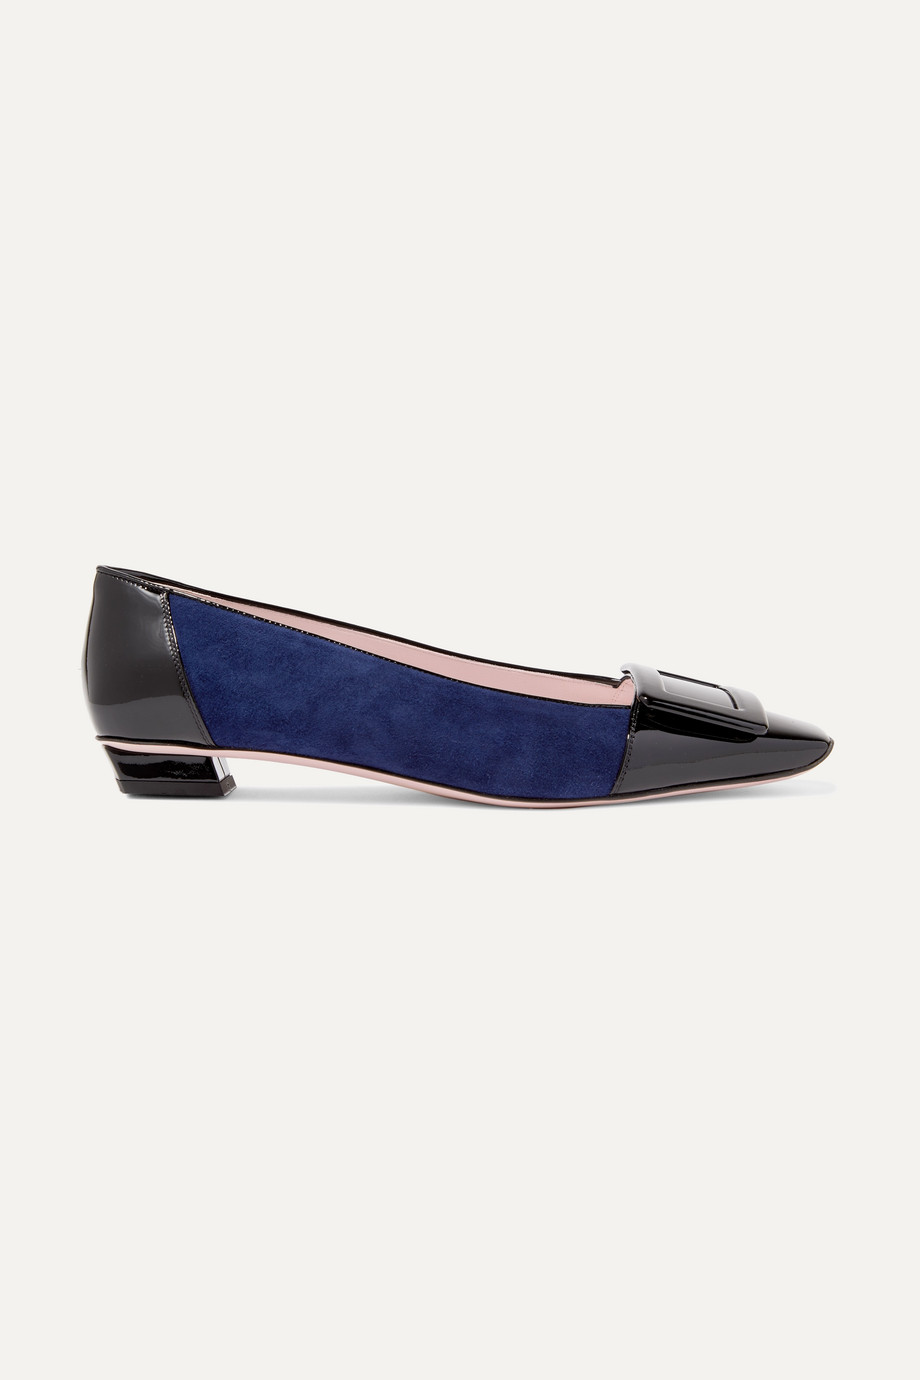 Roger Vivier Belle Vivier patent-leather and suede ballet flats